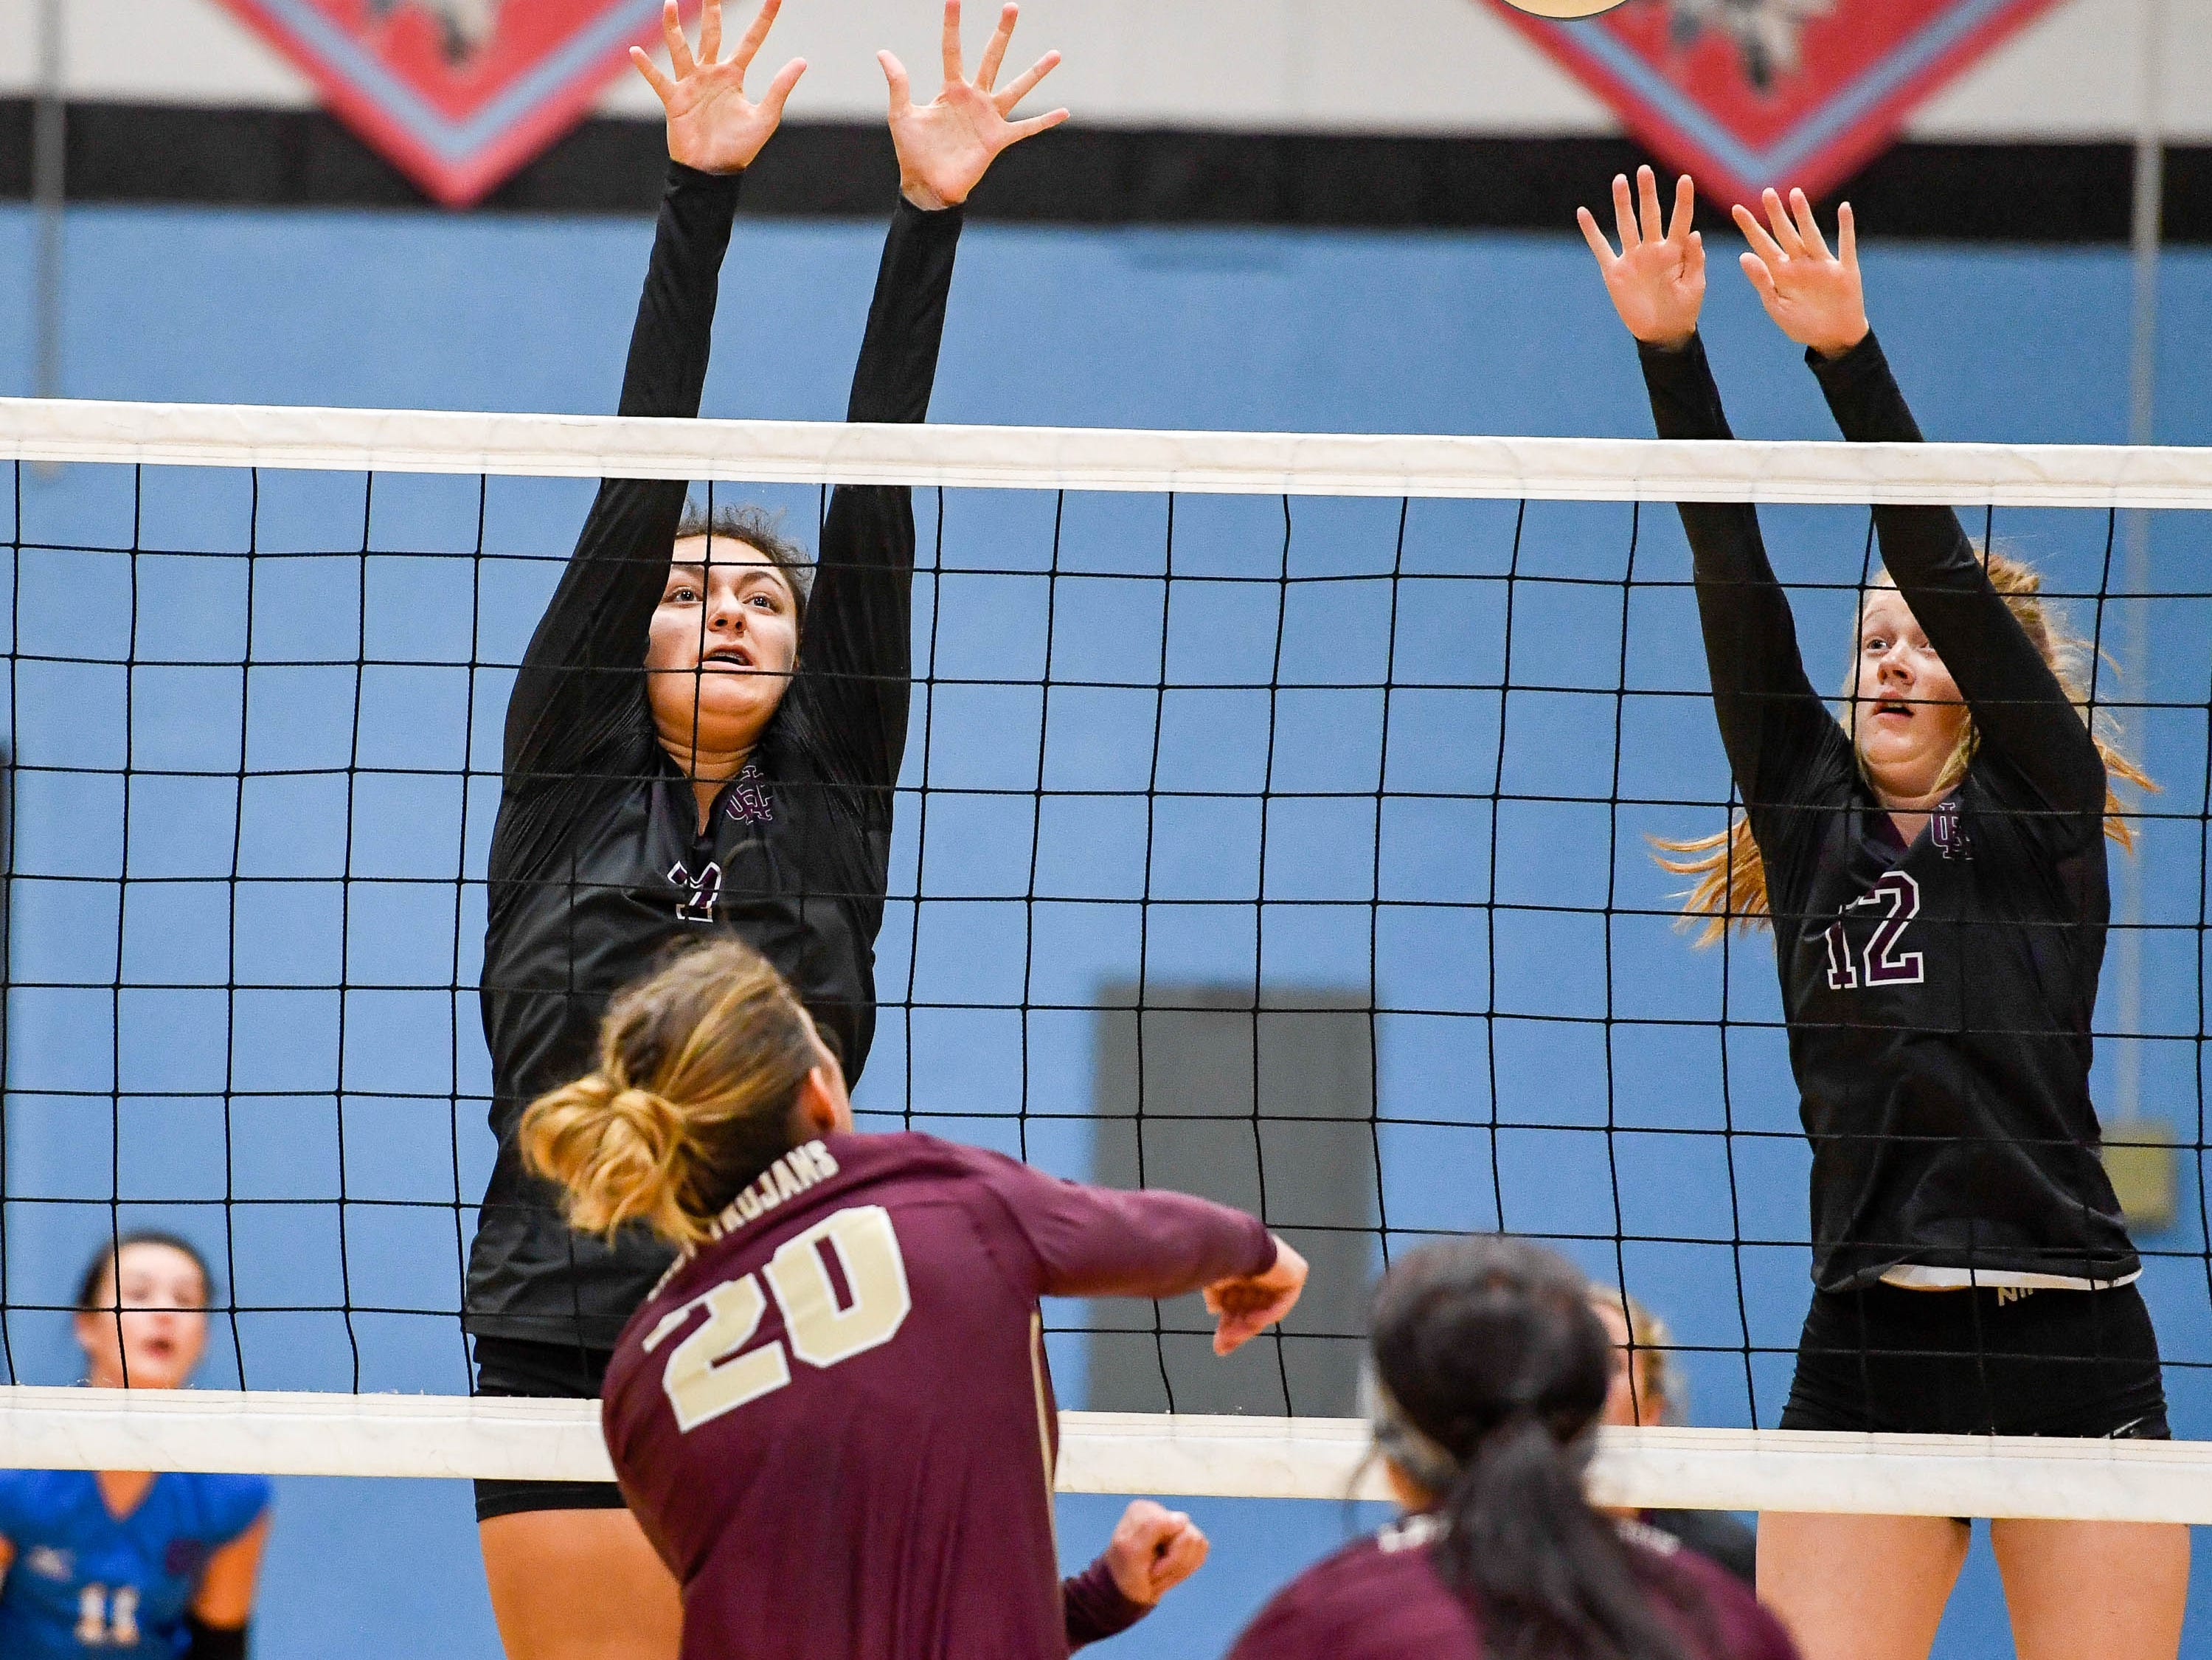 Henderson's Kaylee Stott (7) and  Macala Walker (12) try to block a shot from Webster's Lana Eastwood (20) as the Henderson County Lady Colonels play the Webster County Lady Trojans in the District Volleyball Tournament championship match in Morganfield, Tuesday, October 9, 2018.